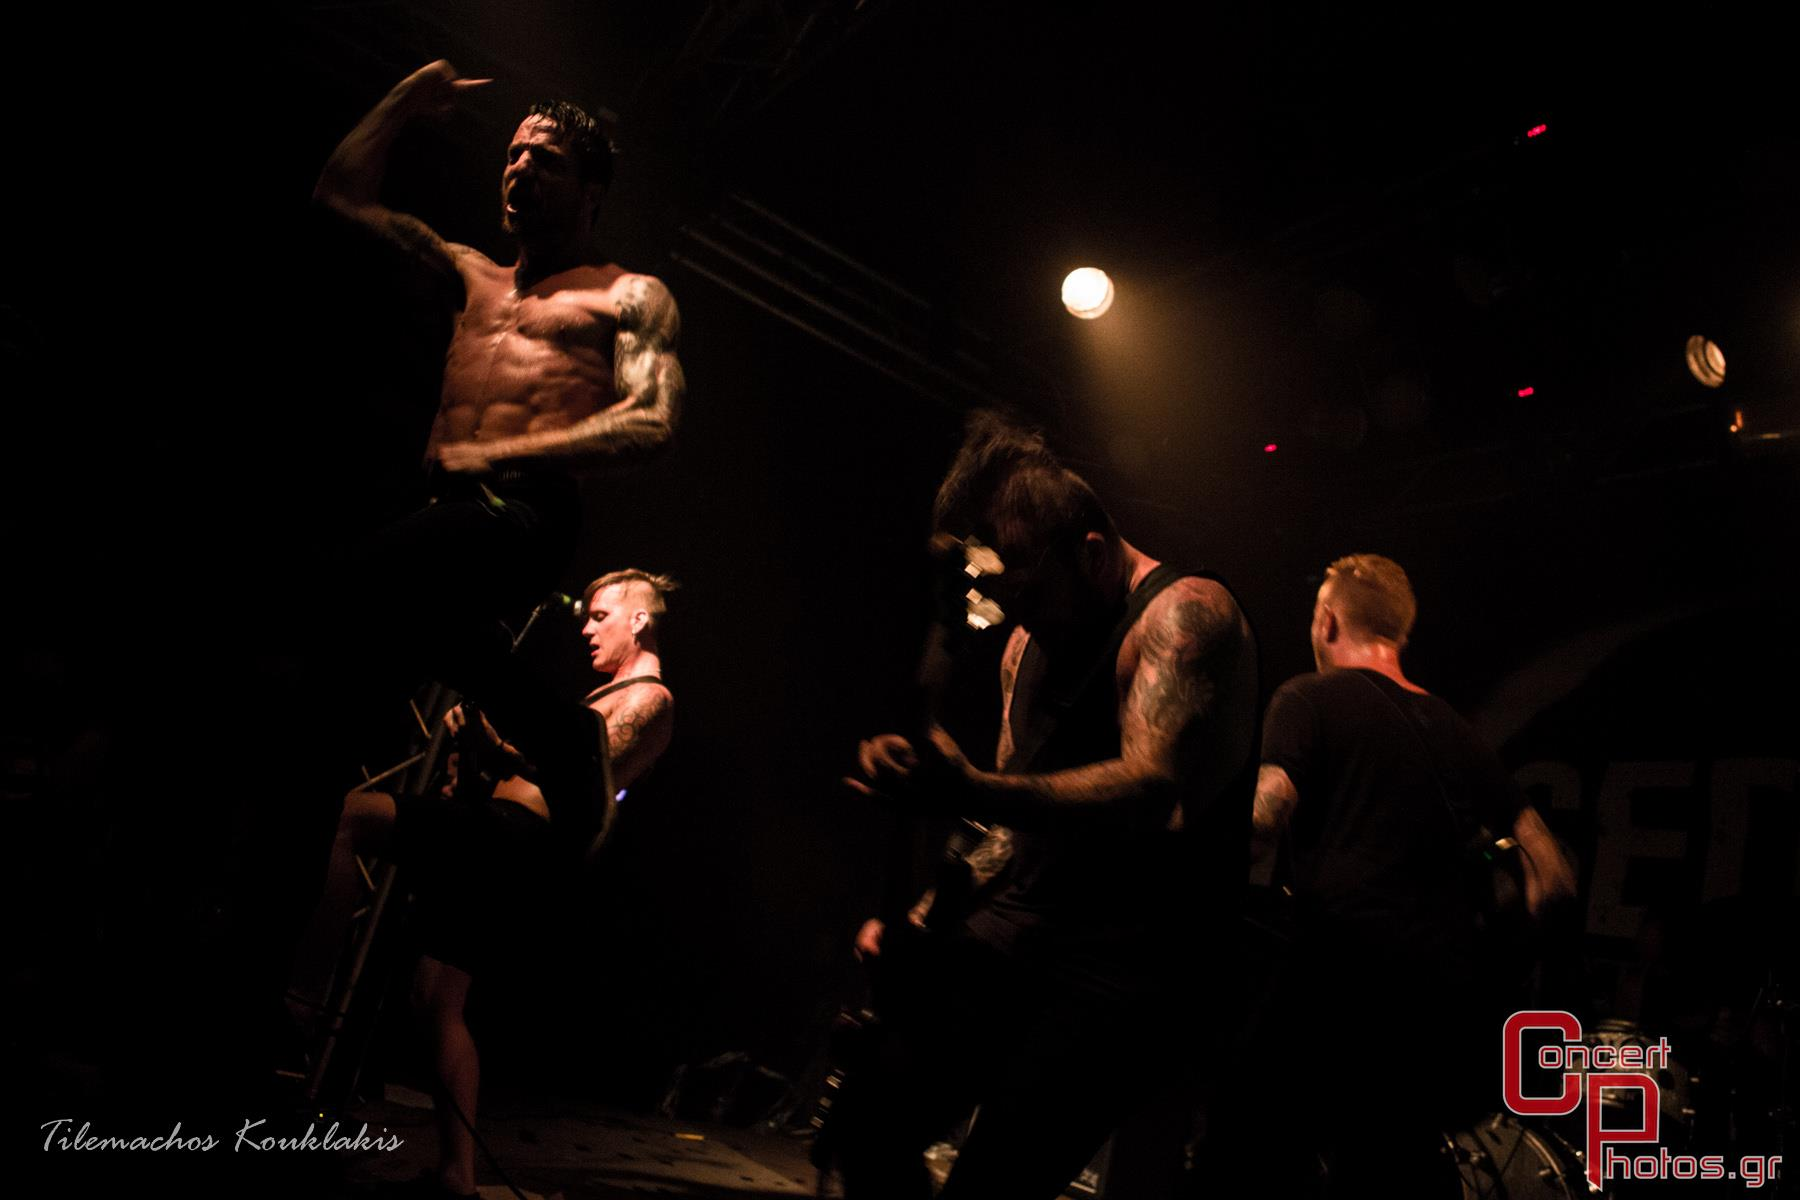 Raised Fist - Endsight - The Locals-Raised Fist photographer:  - 01_Raised Fist_19